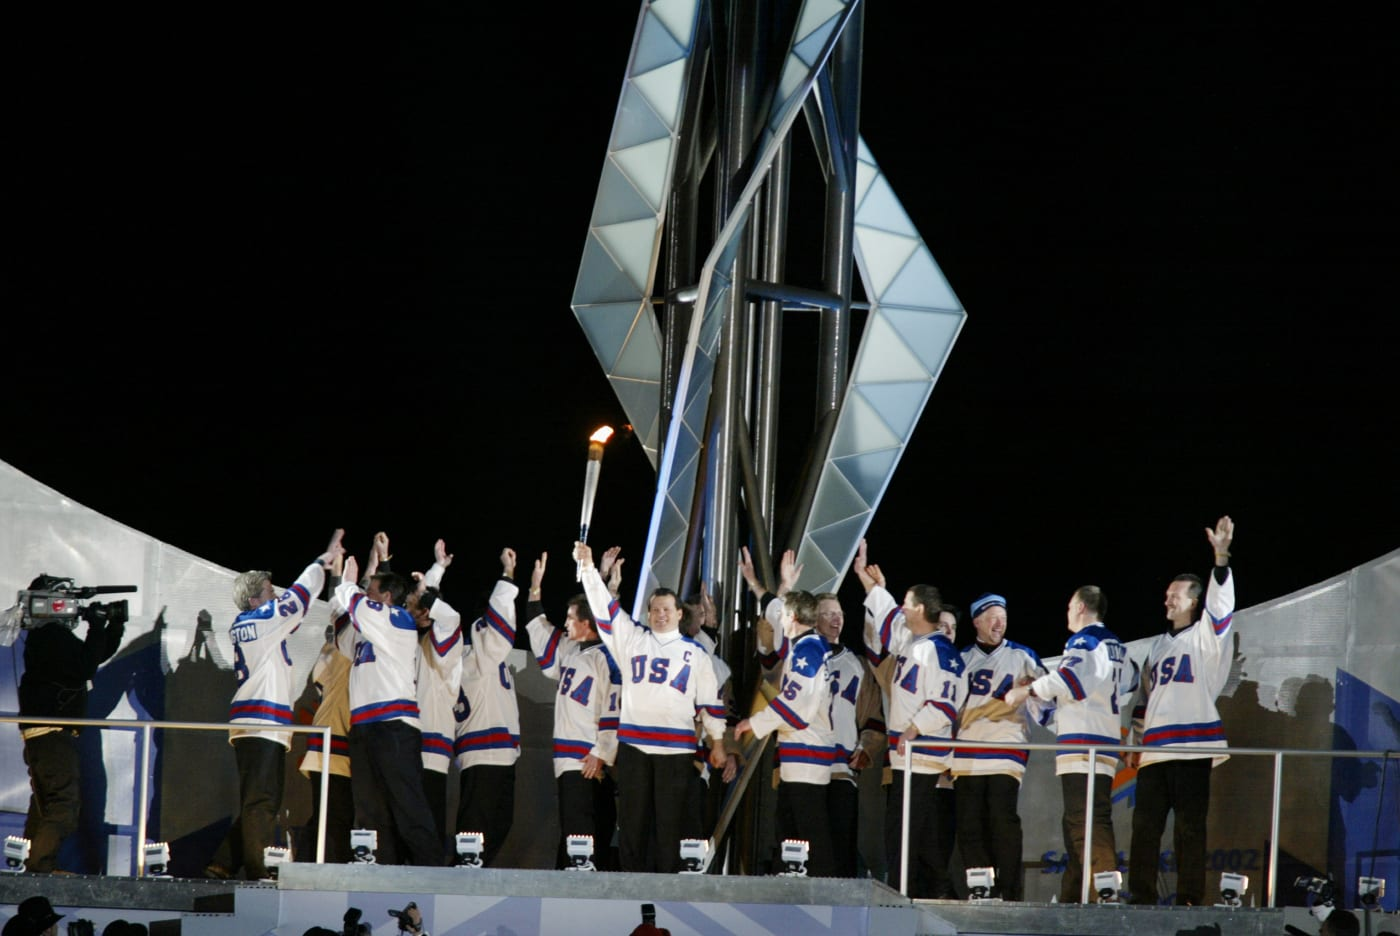 This is a photo of the Miracle on Ice USA Hockey Team